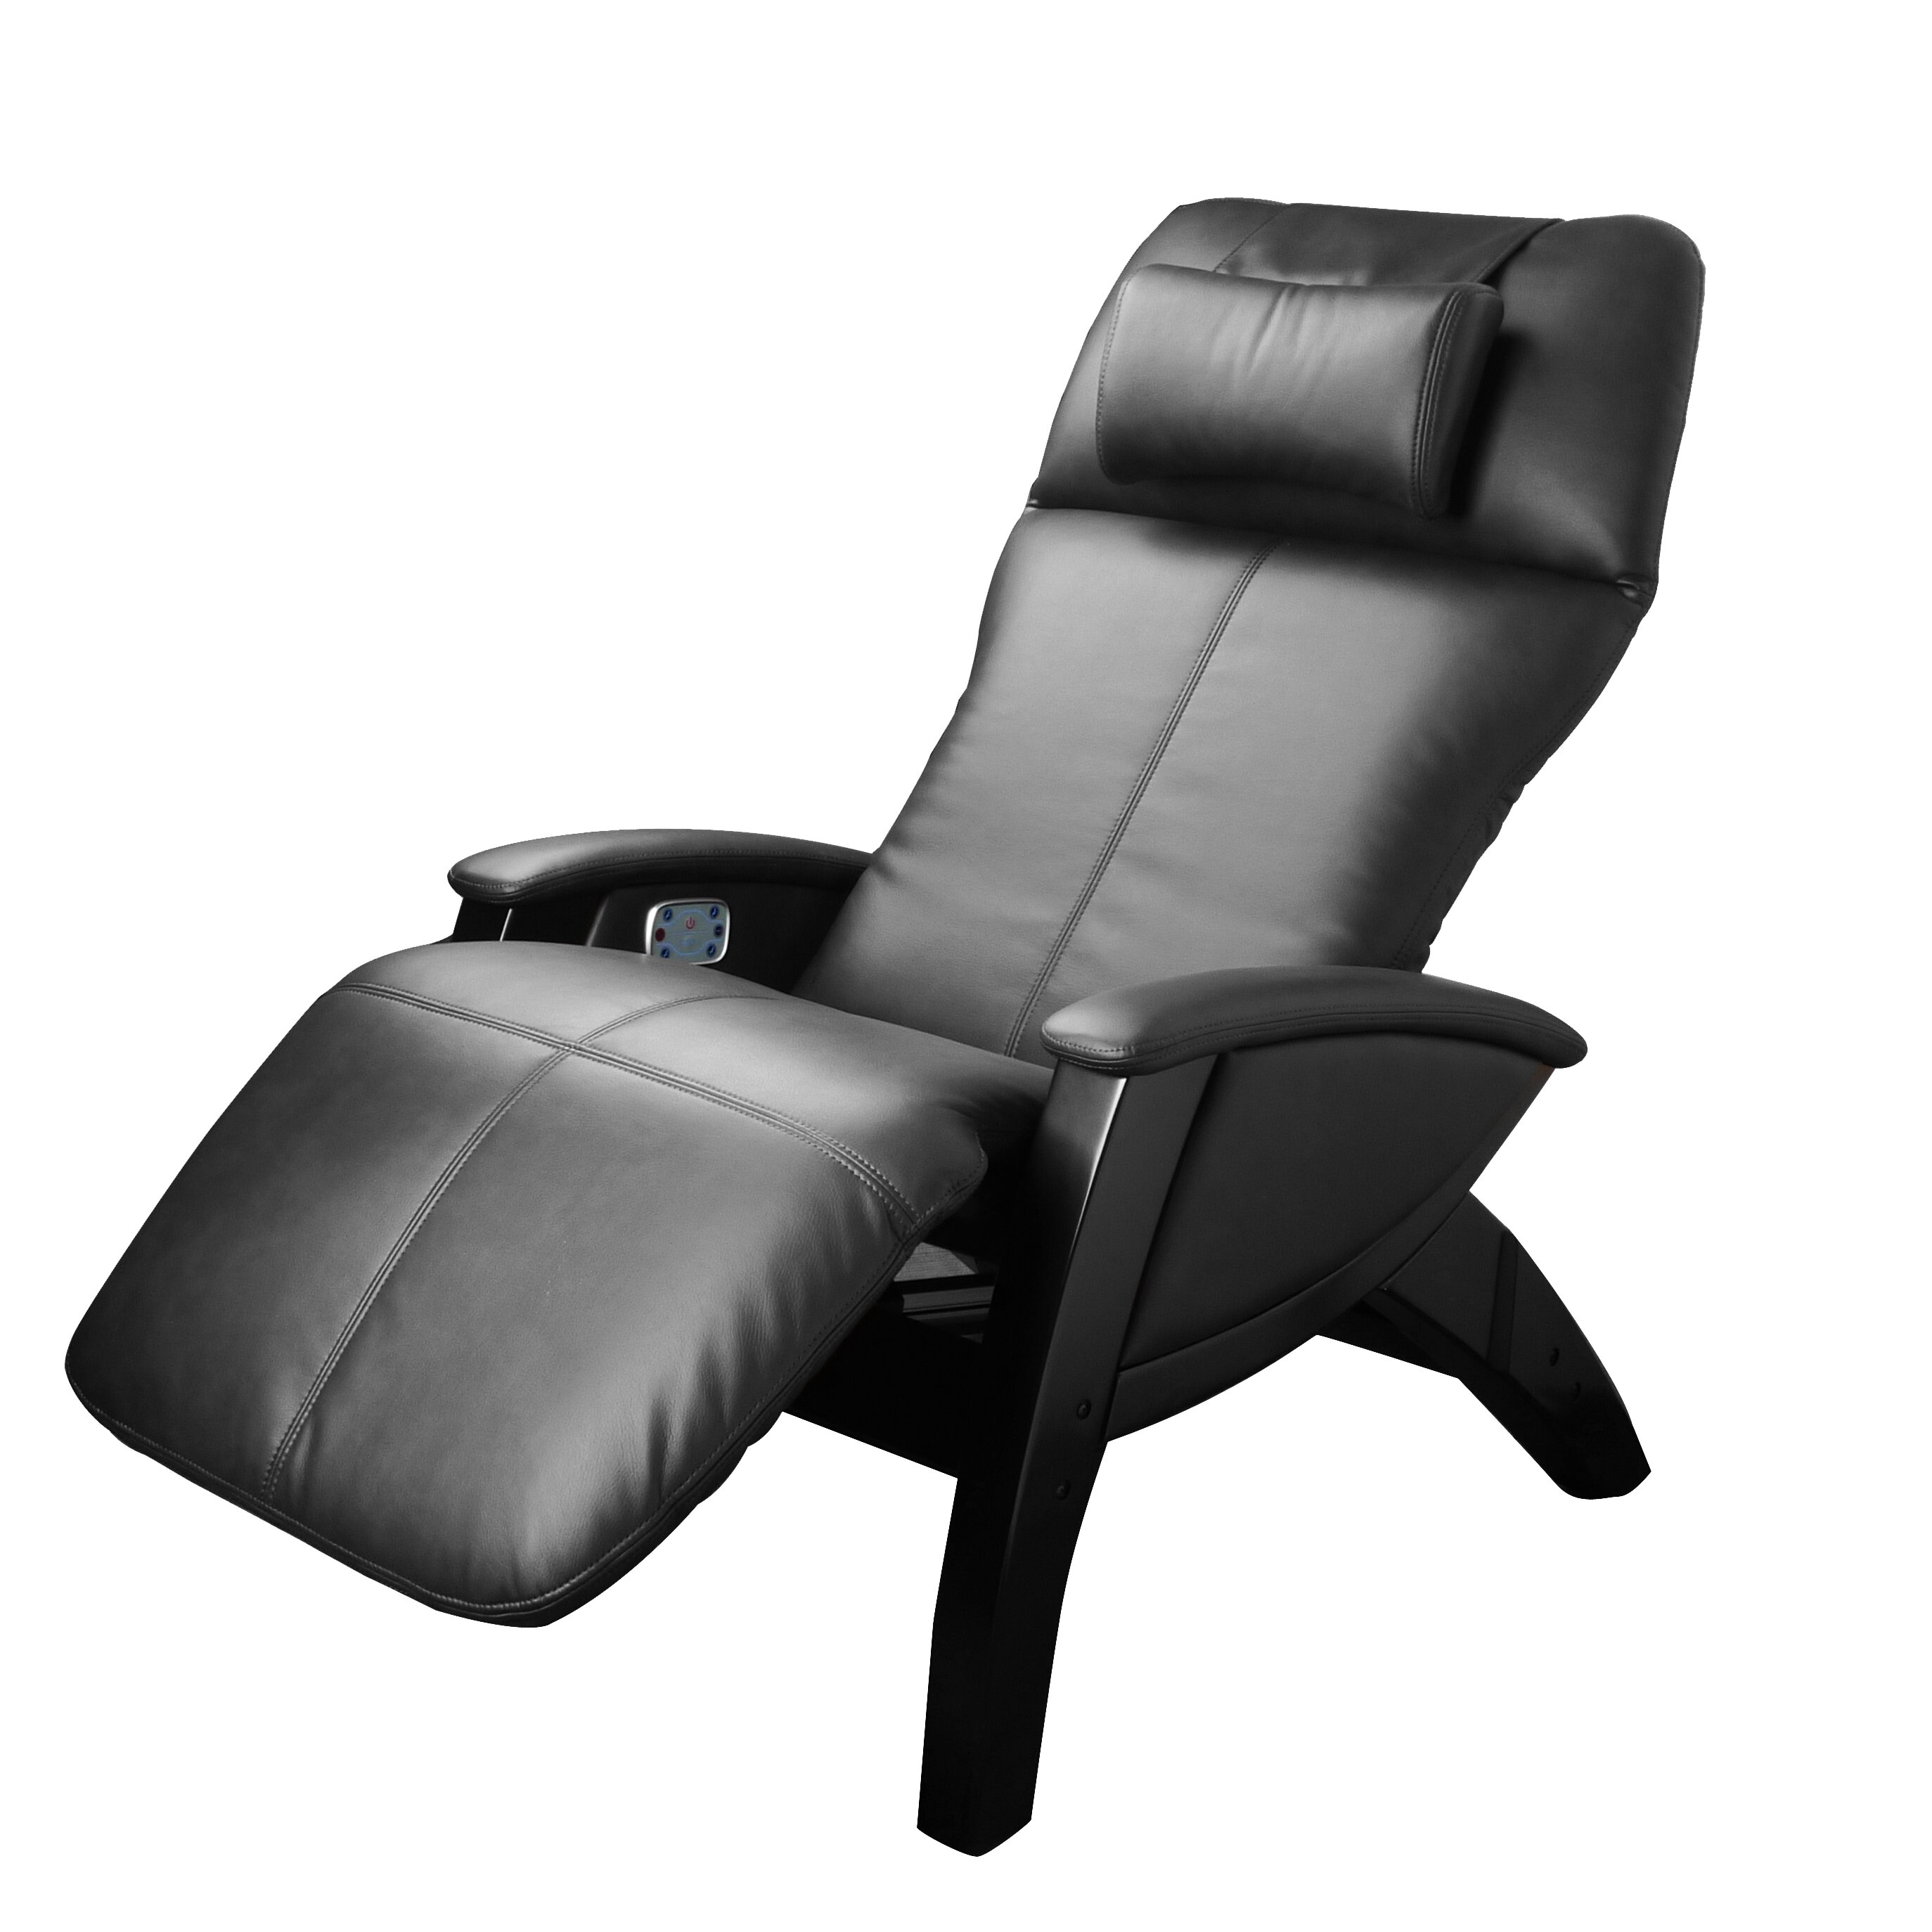 Cozzia Dual Power Zero Gravity Recliner Wayfair Ca